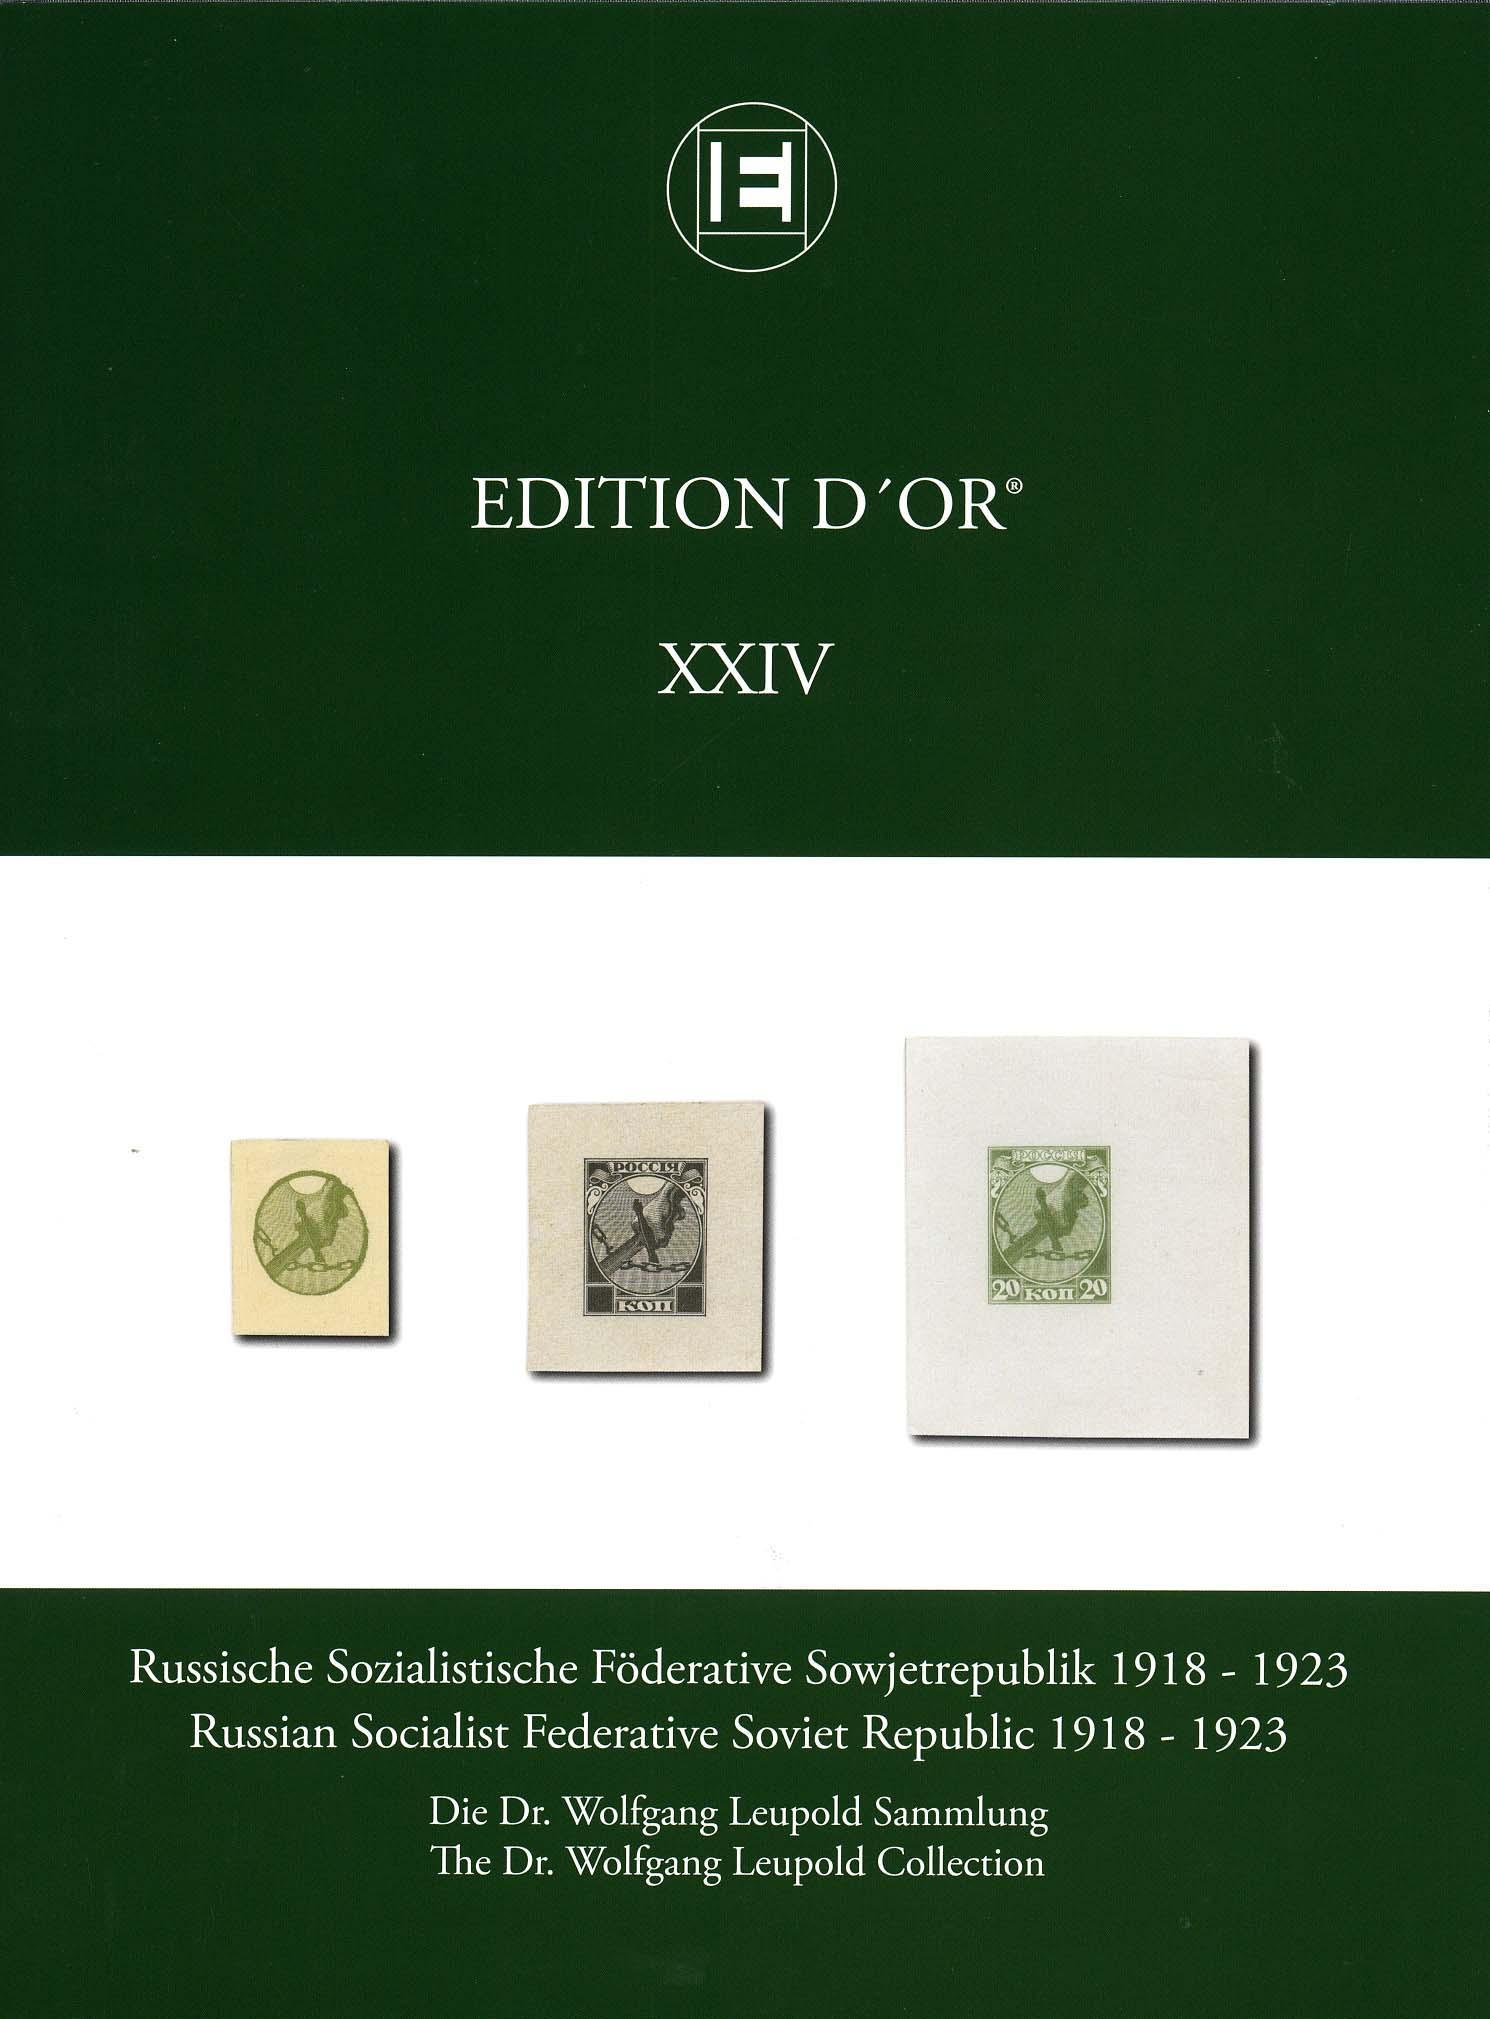 Vol. 24: Russian Socialist Federative Soviet Republic 1918-23 • The Dr. Wolfgang Leupold Collection